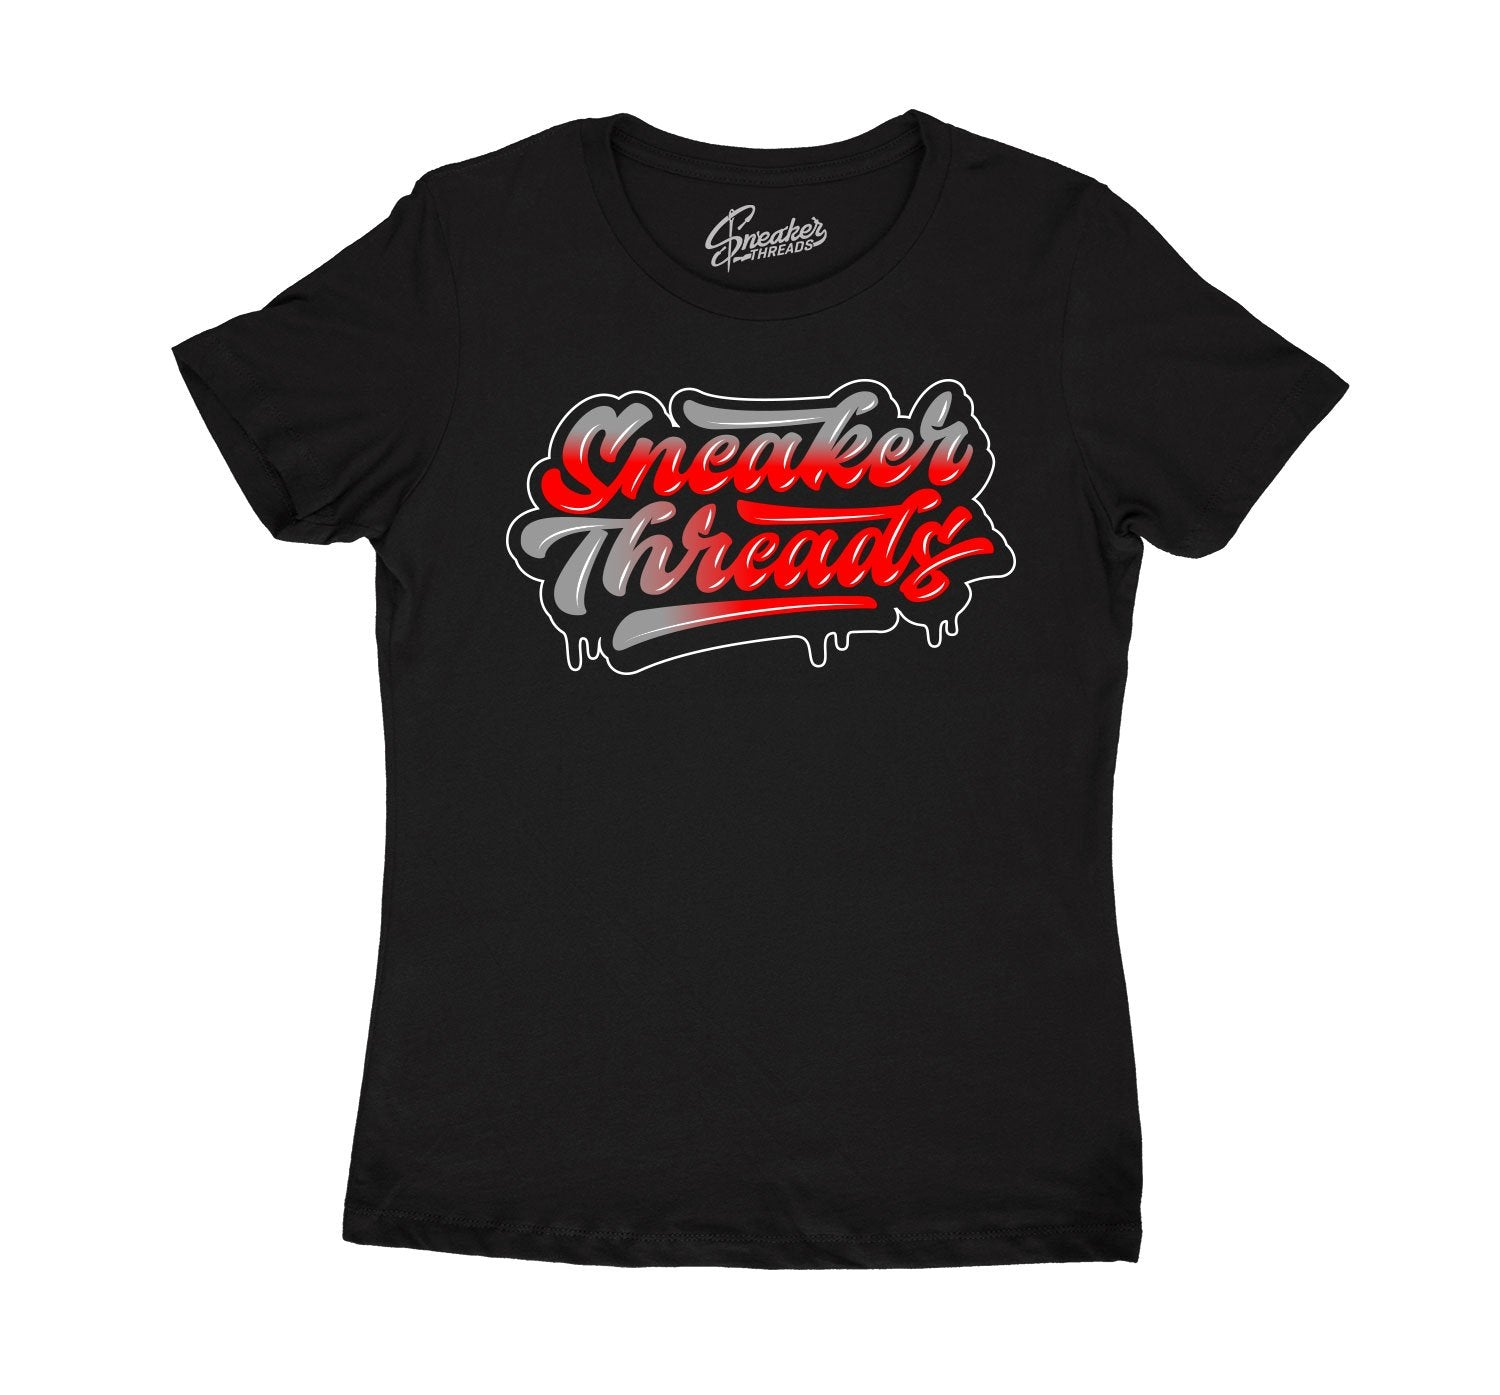 Retro 11 bred sneaker collection has matching womens shirt collection